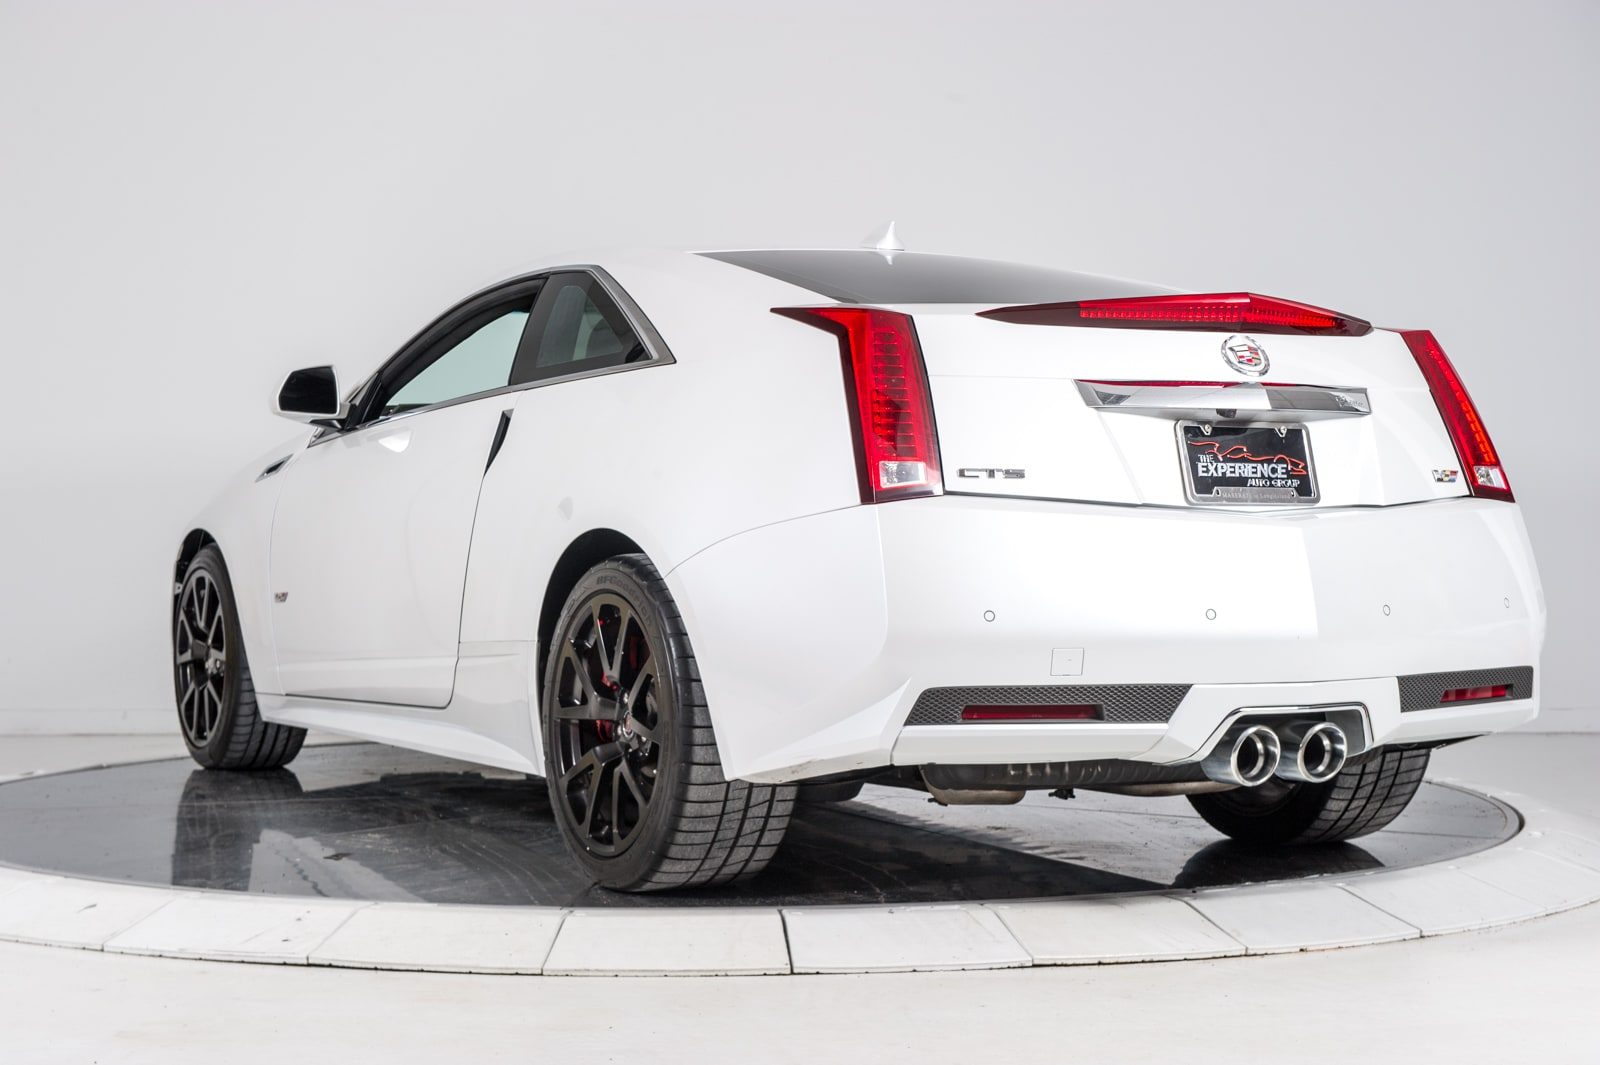 Cadillac Cts V Coupe Specs >> Used 2015 CADILLAC CTS-V COUPE For Sale | Fort Lauderdale FL